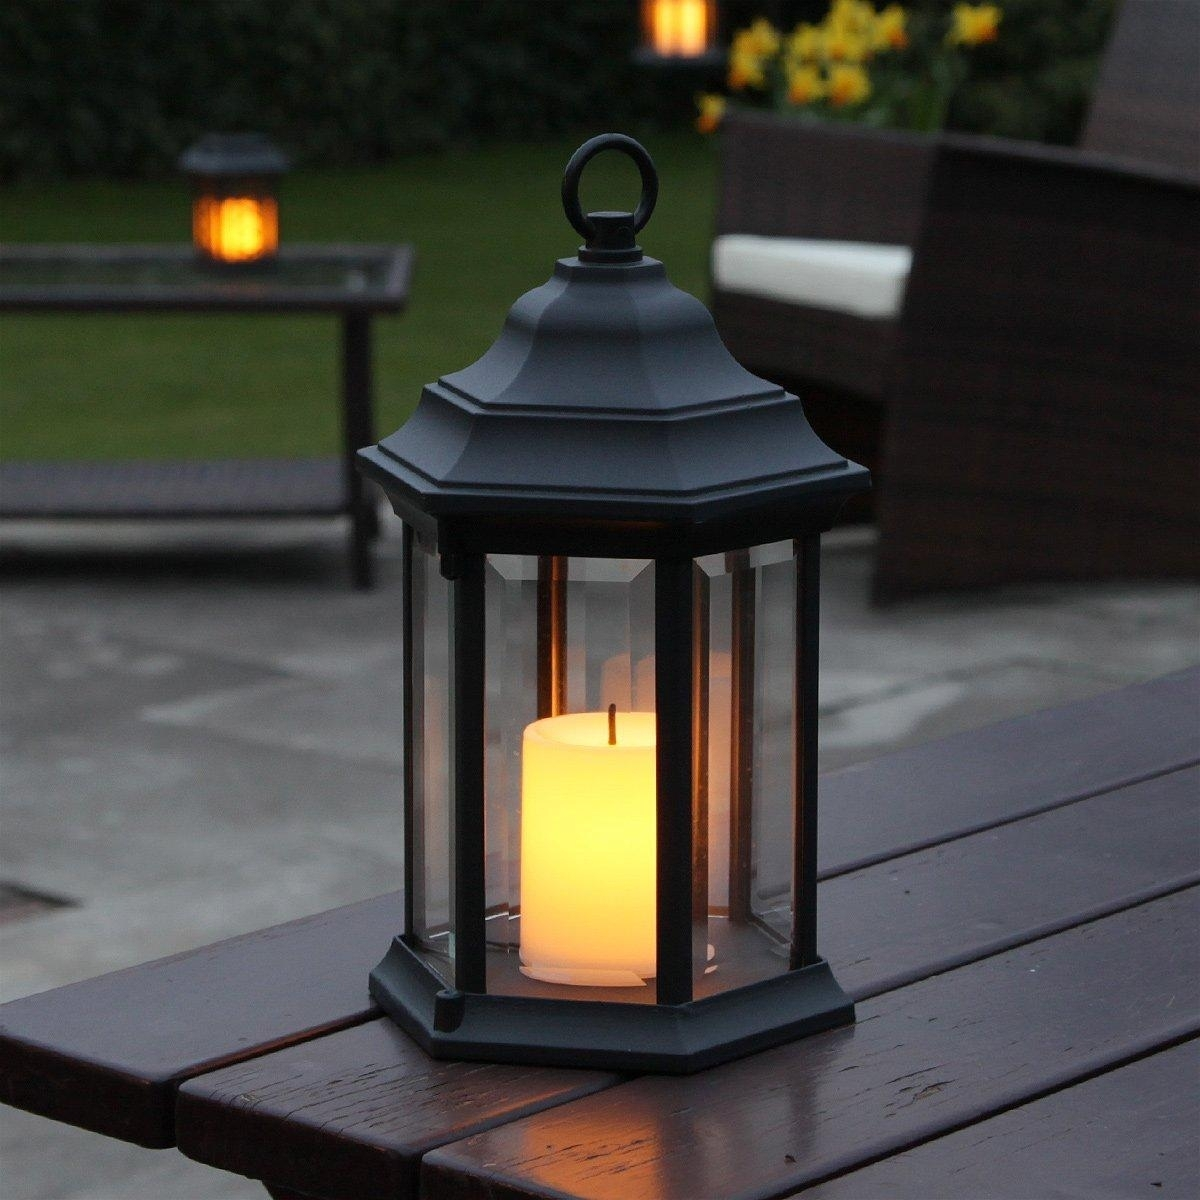 Outdoor Lighting For Sale – Outdoor Lights Prices, Brands & Review Throughout Outdoor Lanterns With Battery Operated Candles (View 17 of 20)